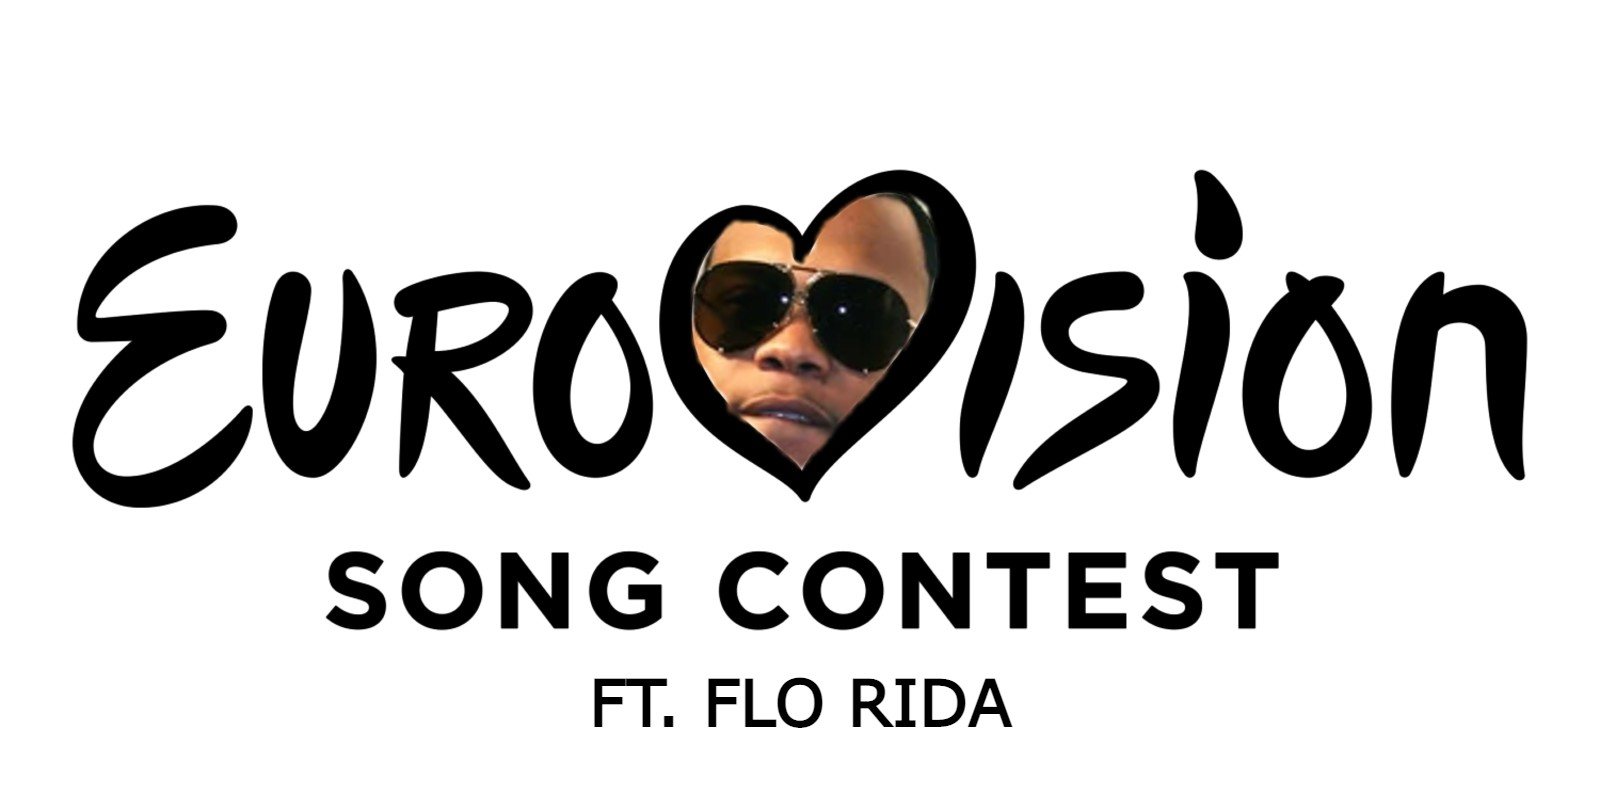 Flo Rida Is In The Eurovision Song Contest